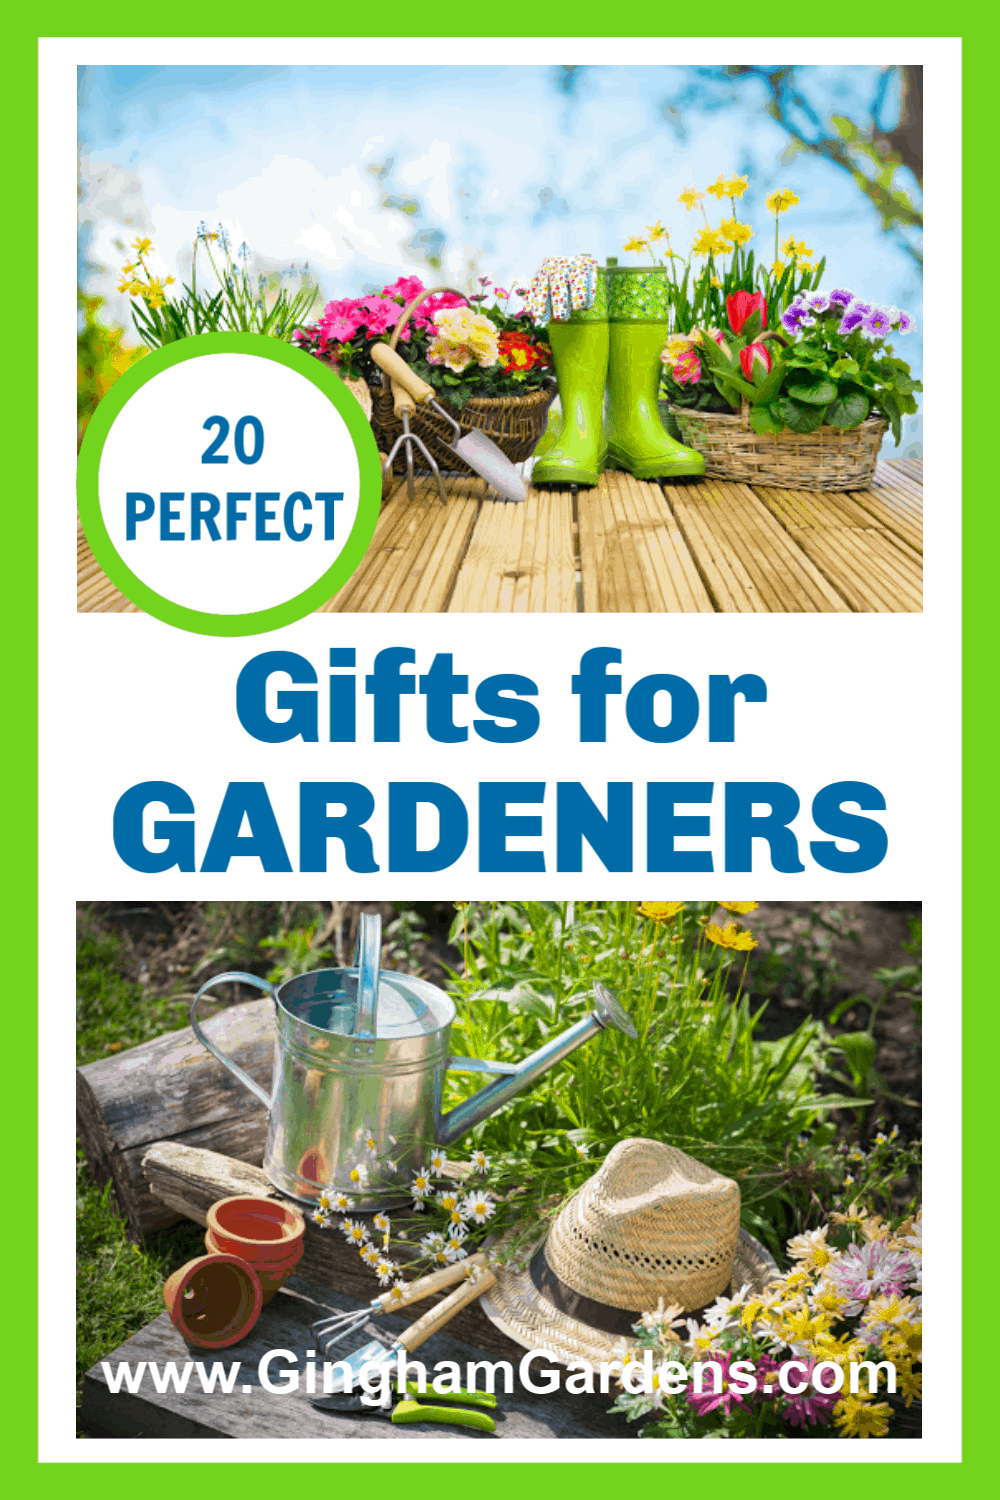 Images of Gardens and gardening gear with text overlay - 20 Perfect Gifts for Gardeners